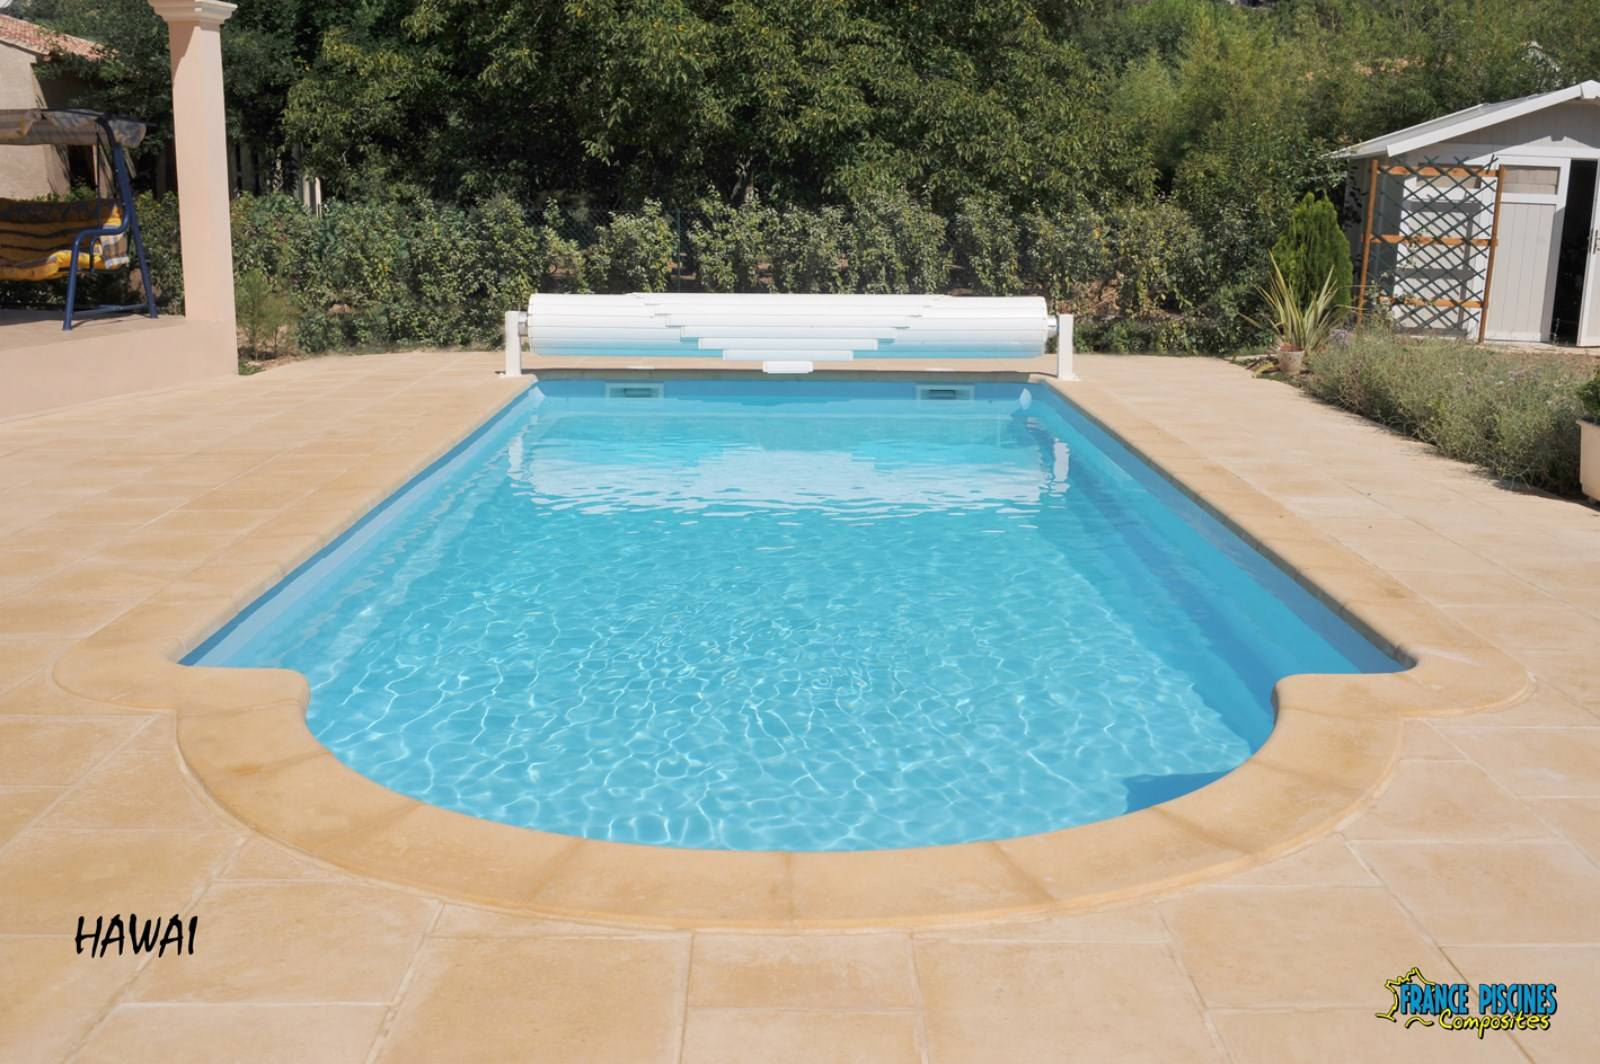 Vente et pose de piscine enterr e coque polyester for Tarif piscine coque